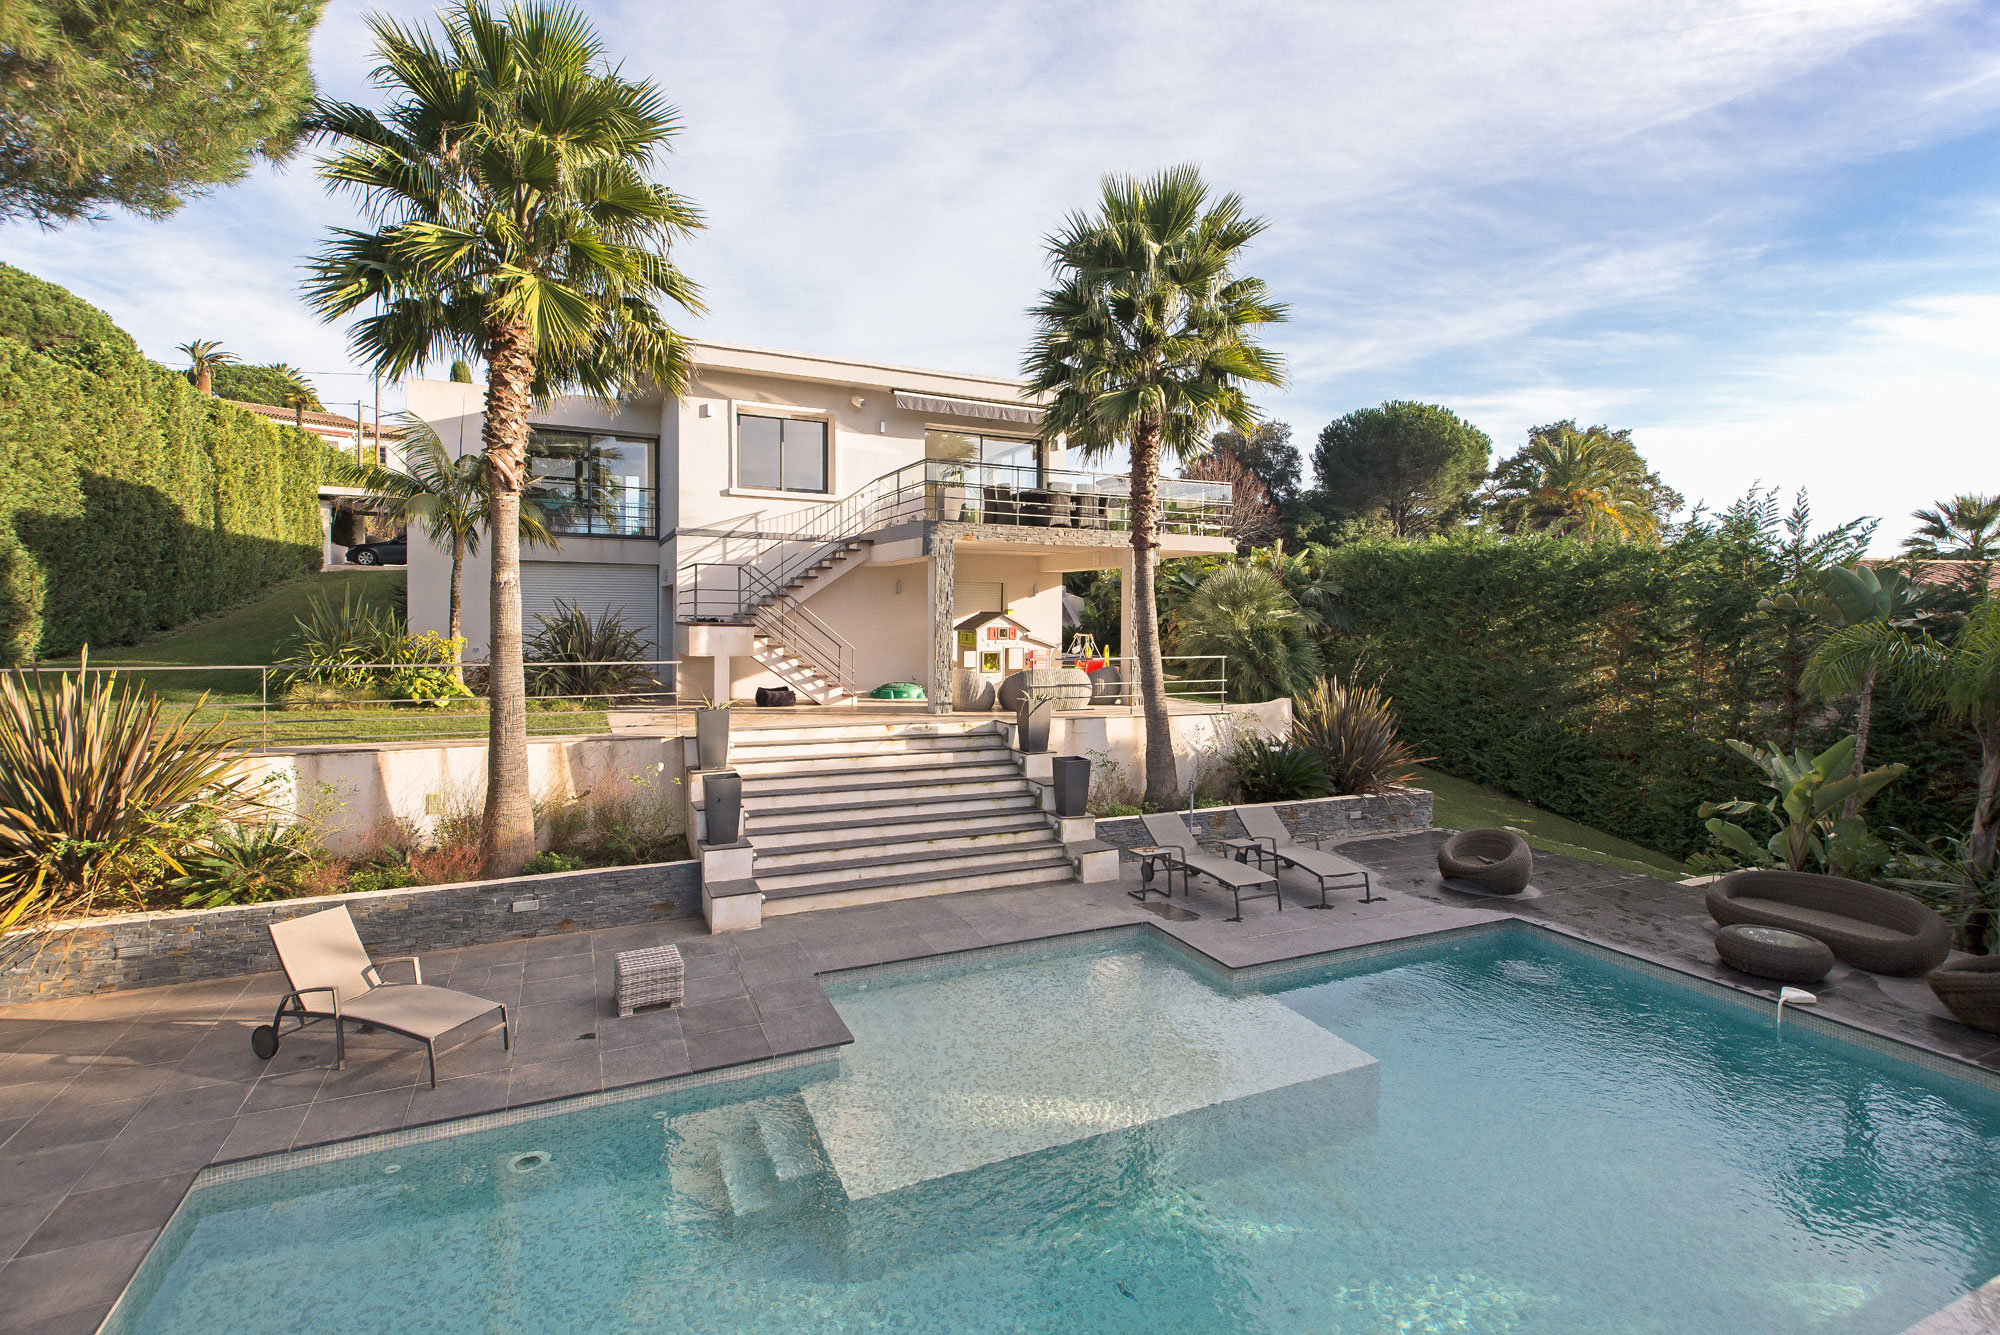 <b>4 Bedrooms, 3,229 sq. ft.</b><br/>Modern villa with terrace and panoramic sea views